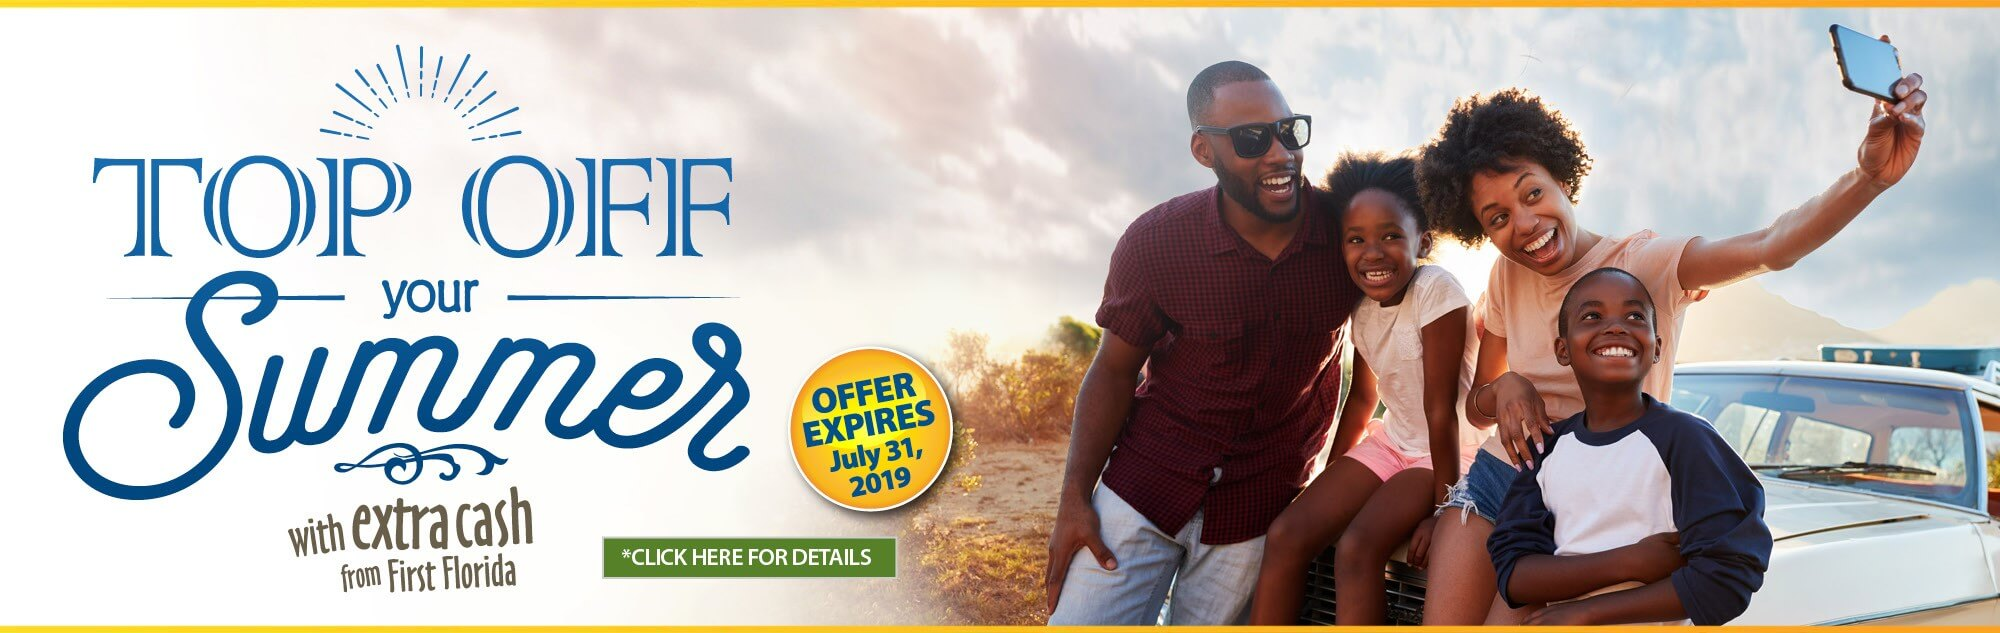 Top off your summer with extra cash from First Florida. Offer expires July thirty first two thousand and nineteen. Click here for details.